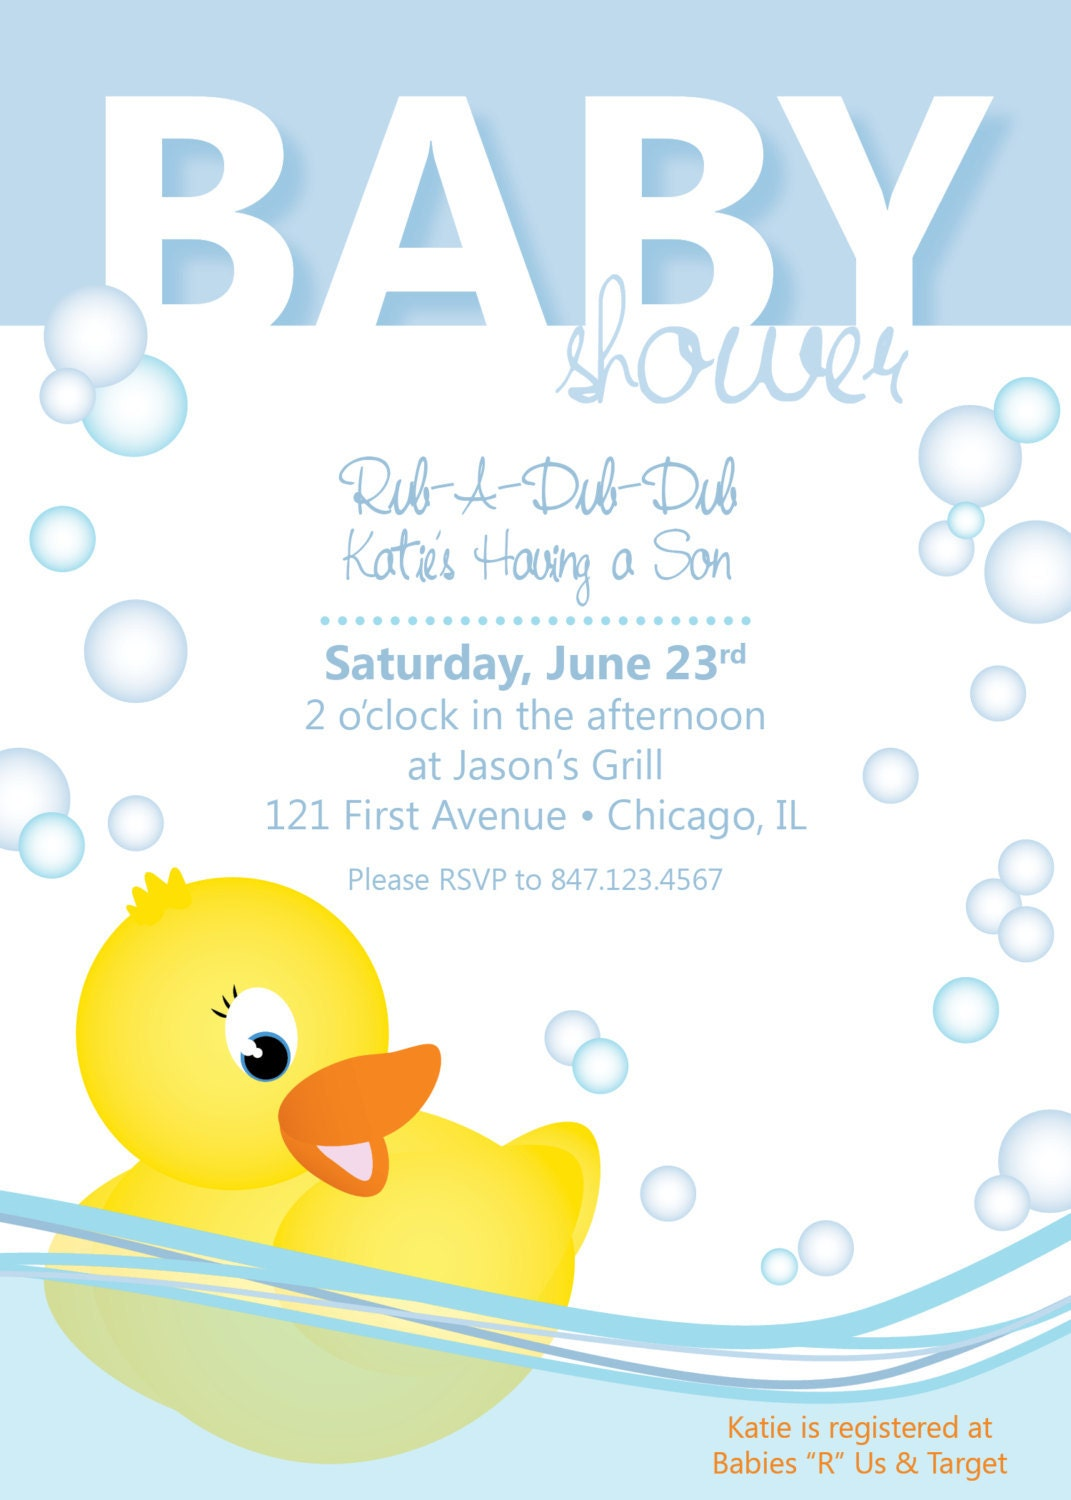 baby shower invitation rubber ducky by collidestudio on etsy